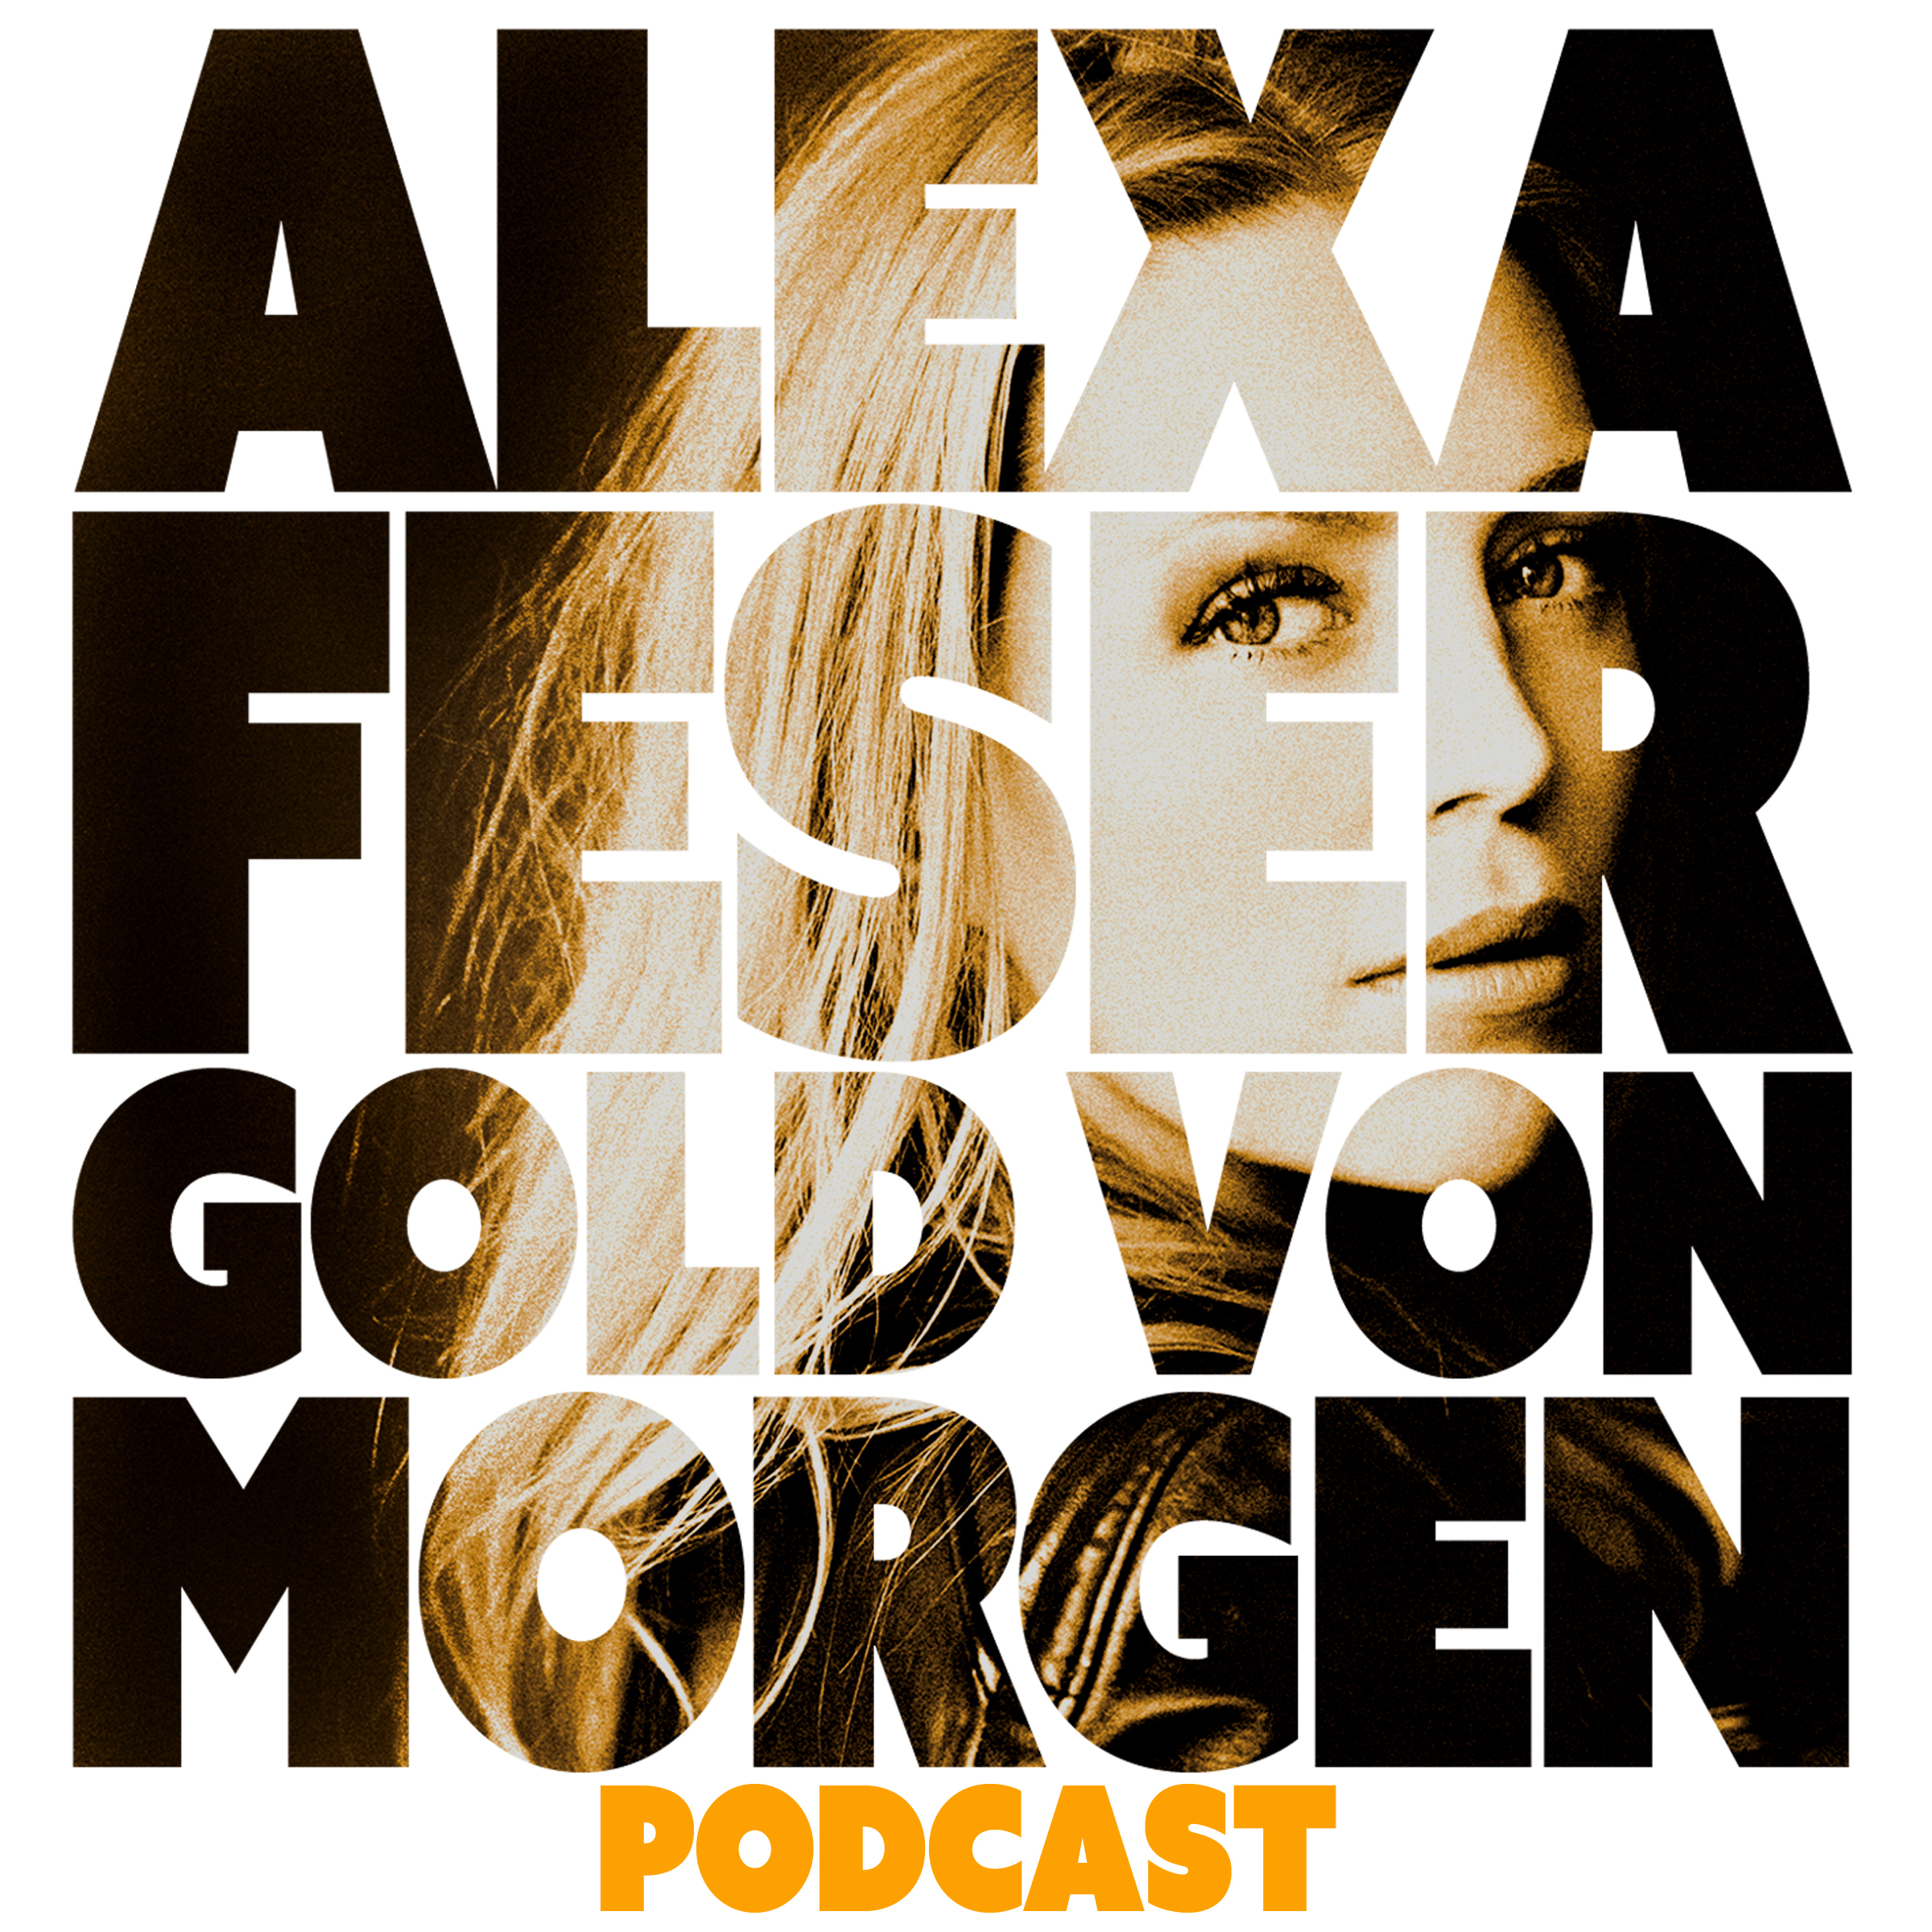 Alexa Feser – Gold von morgen Podcast